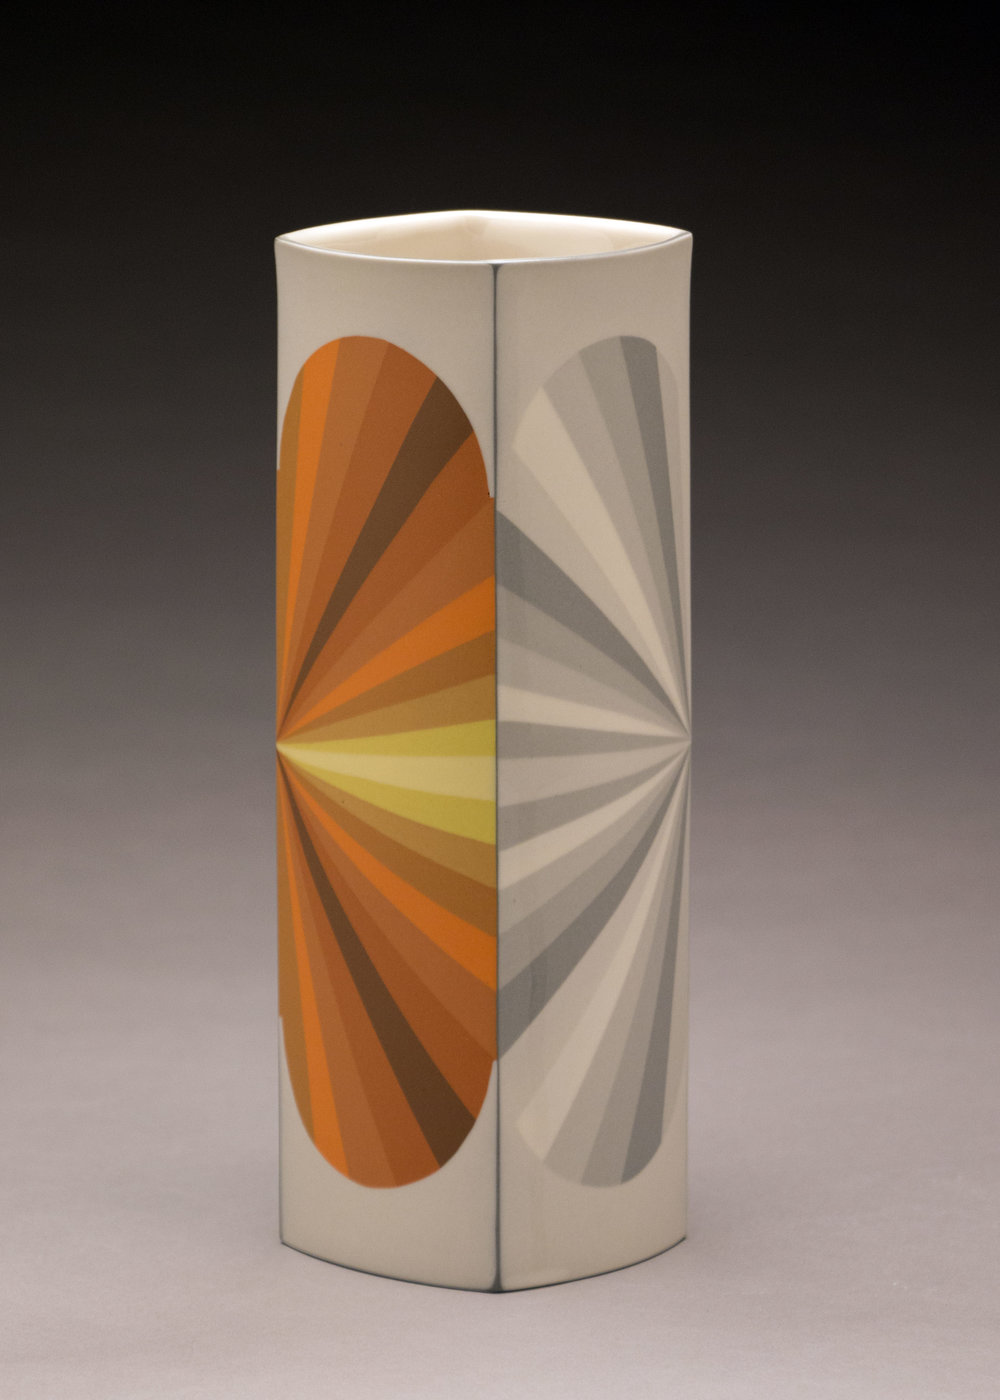 Peter Pincus,  Inversion Column  (side B), 2018, colored porcelain, 9.5 x 4 x 4 inches, $1800.